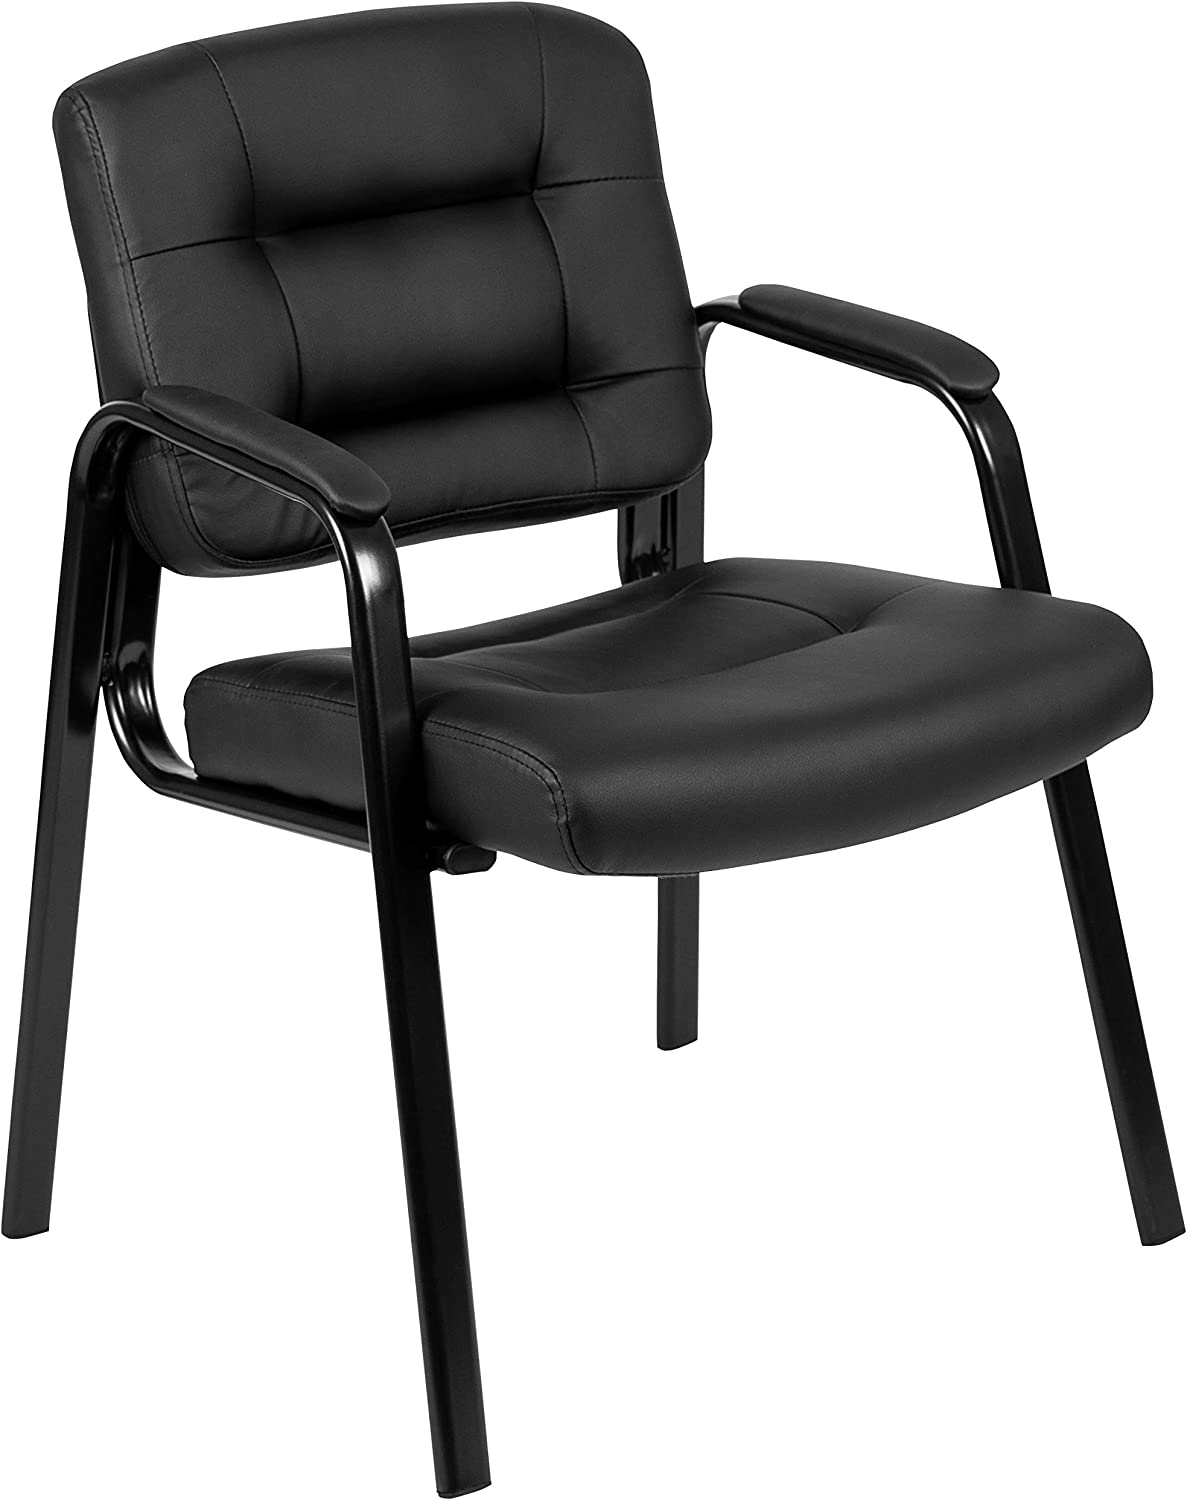 Flash Fundamentals Black LeatherSoft Executive Reception Chair with Black Metal Frame